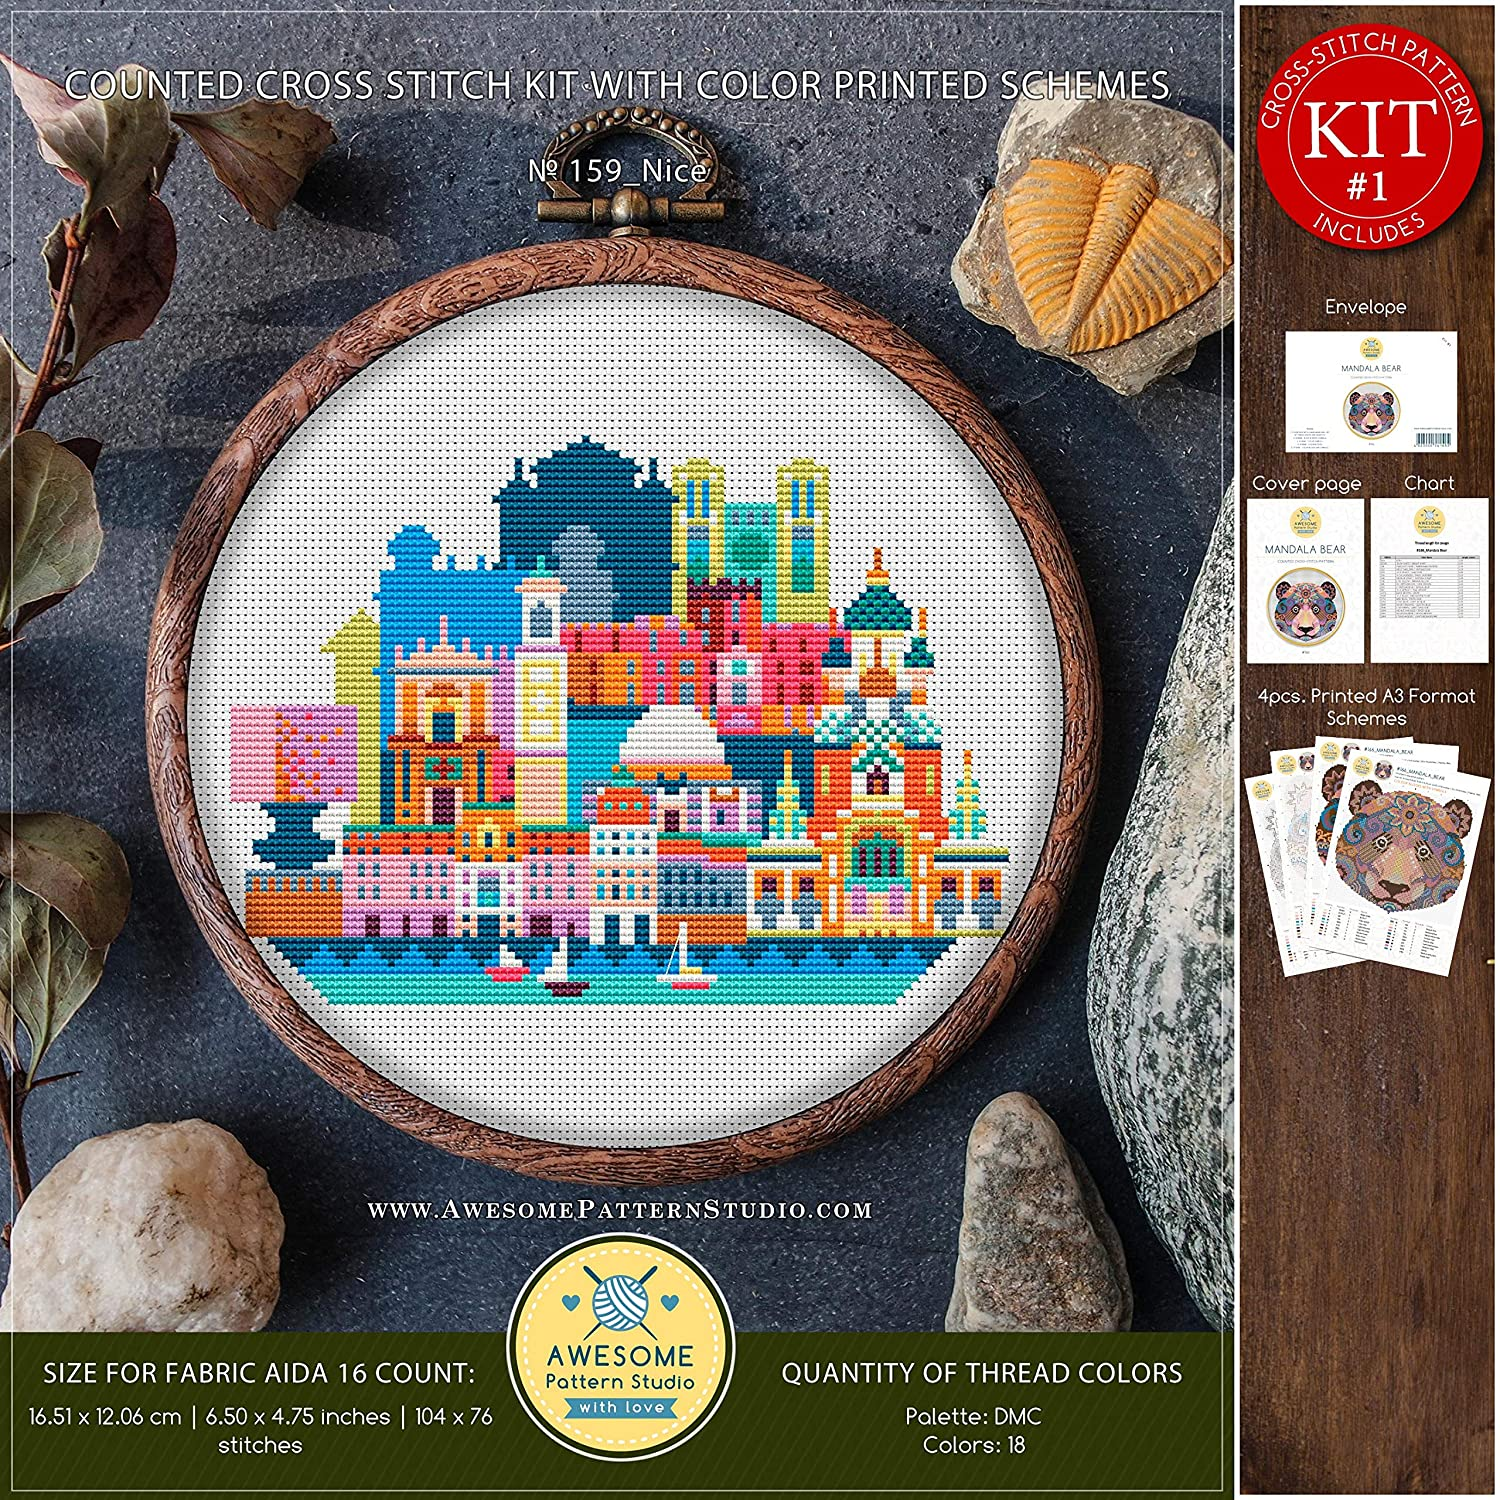 Nice #K159 Embroidery Cross Stitch Kit Embroidery Kits Cross Stitch Designs City Skyline Cross Stitch Patterns Stitch Design